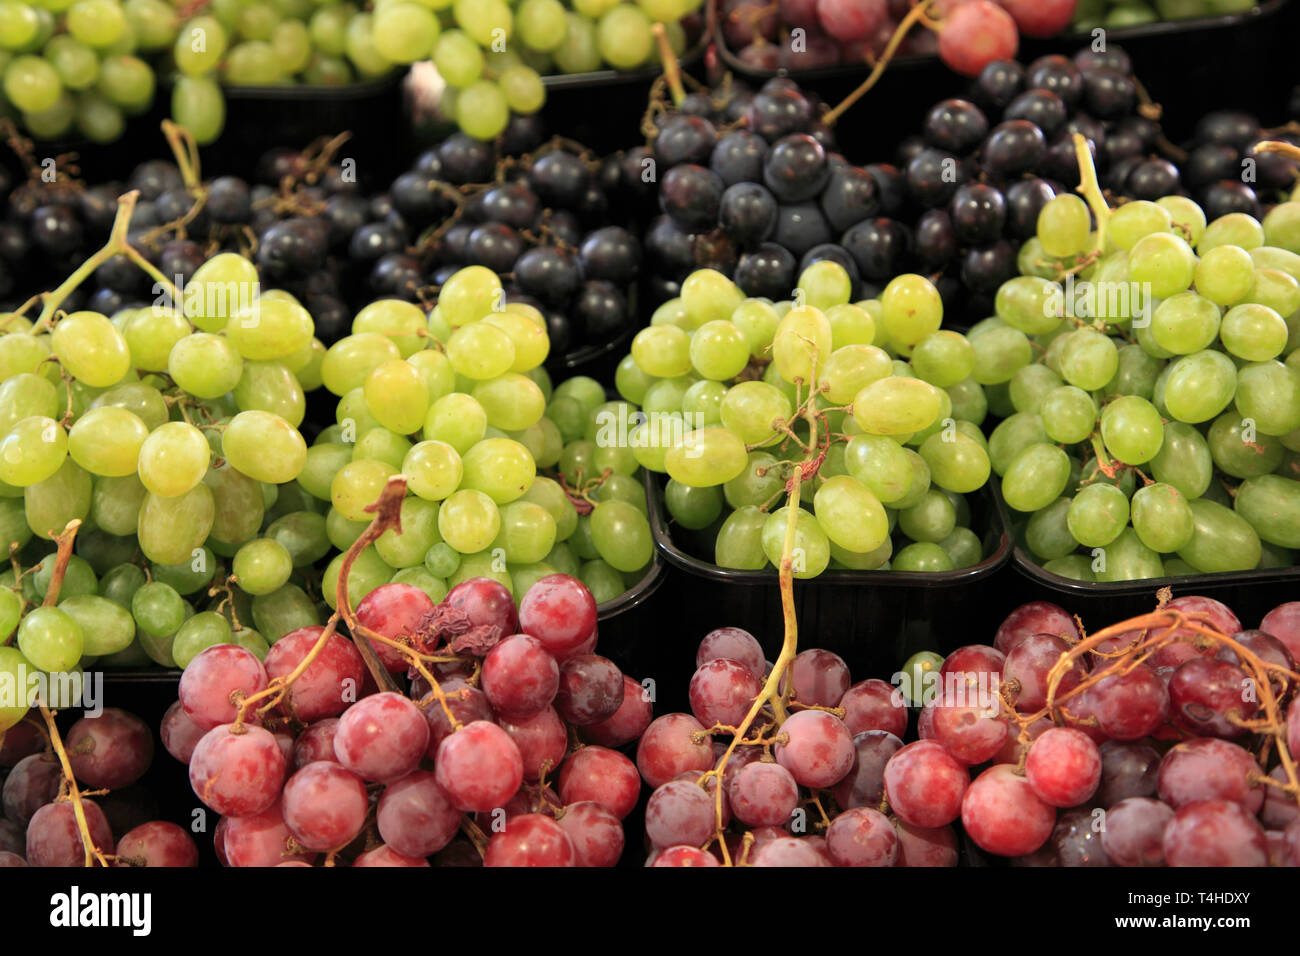 Grapes, Marche Forville, Forville Market, Cote d Azur, Alpes Maritimes, Provence, French Riviera, France, Europe - Stock Image